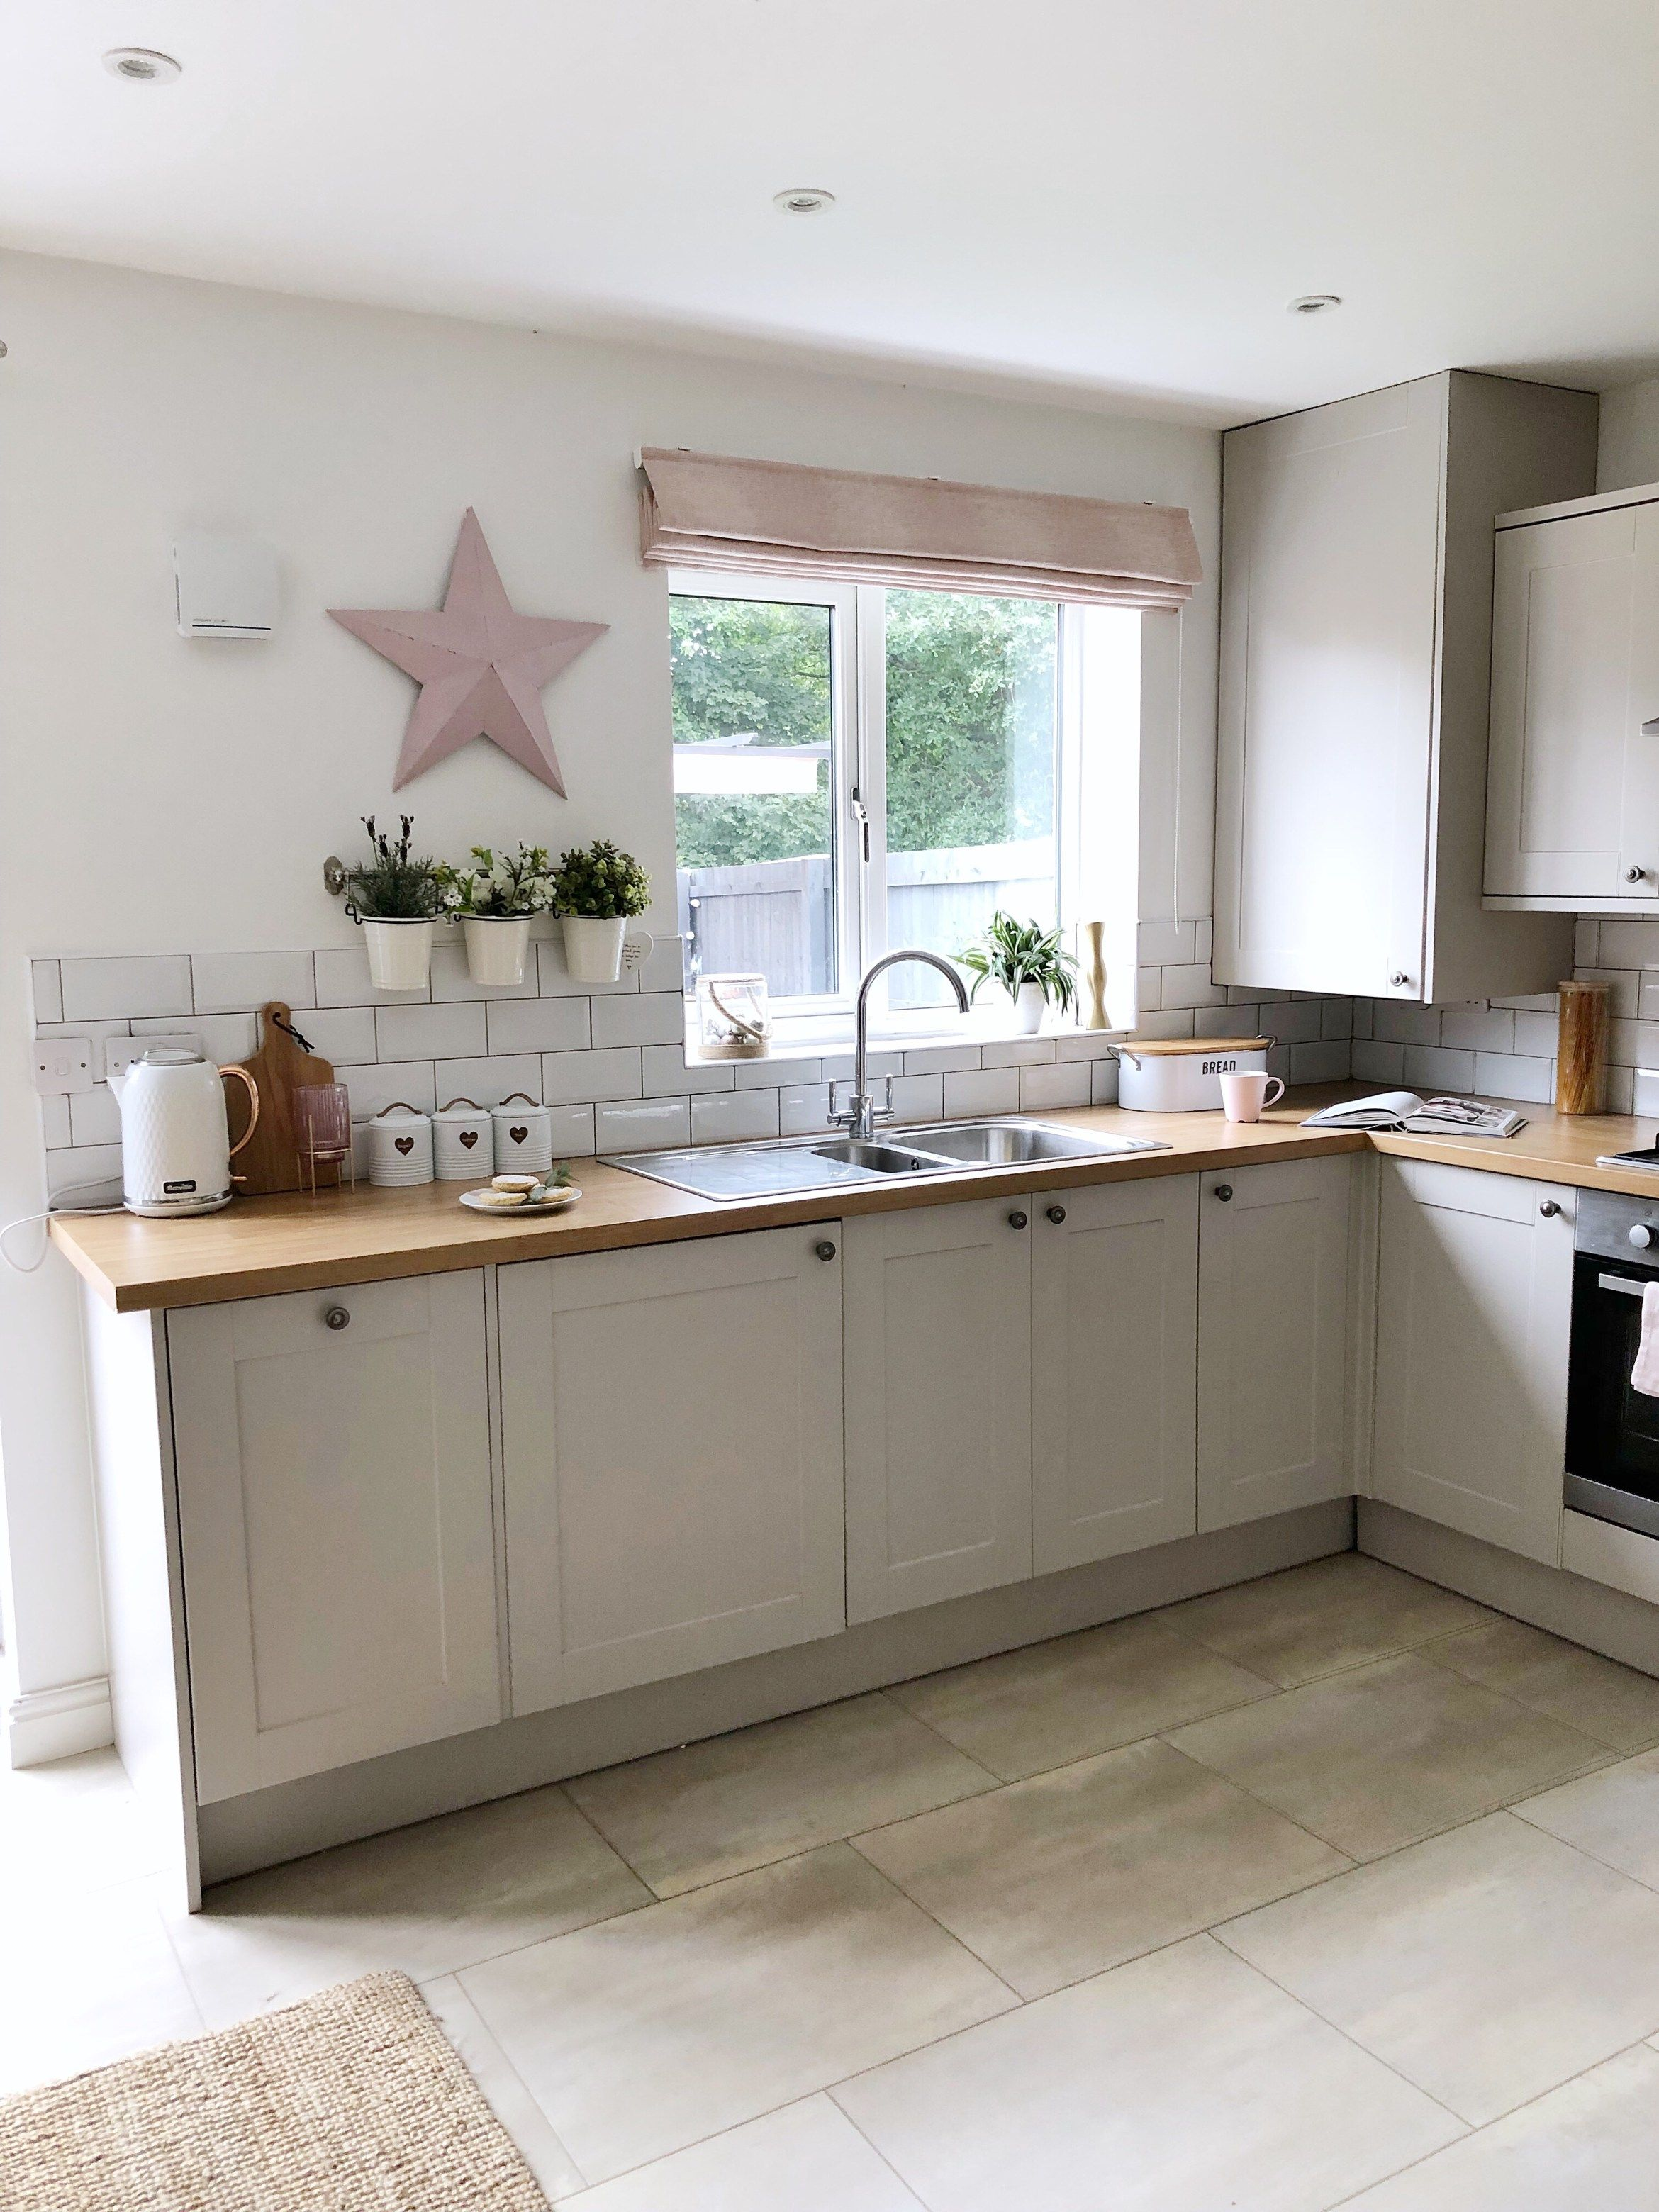 Modern Country Kitchen Update Read All About How I Accessoried My New Build Kitchen Kitchen Designs Layout Kitchen Design Small Traditional Kitchen Design